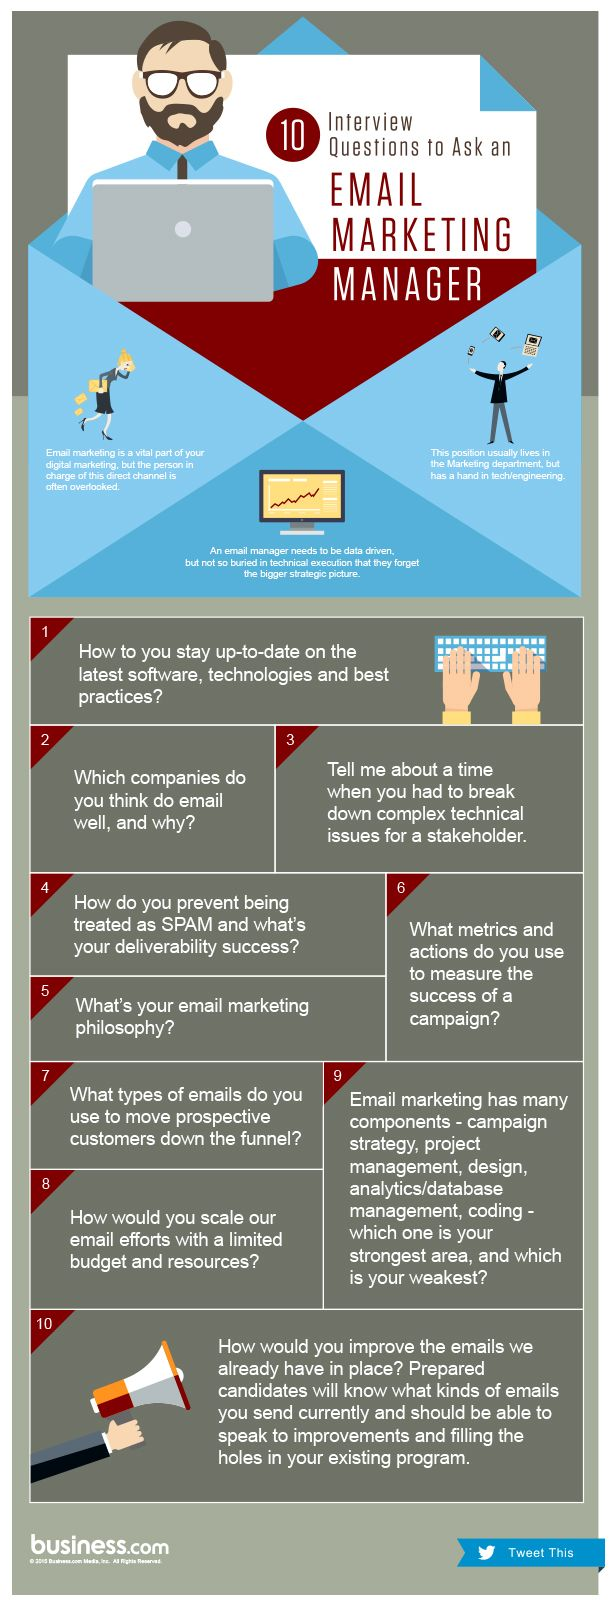 New Infographic Top Interview Questions To Ask An Email Marketing Manager